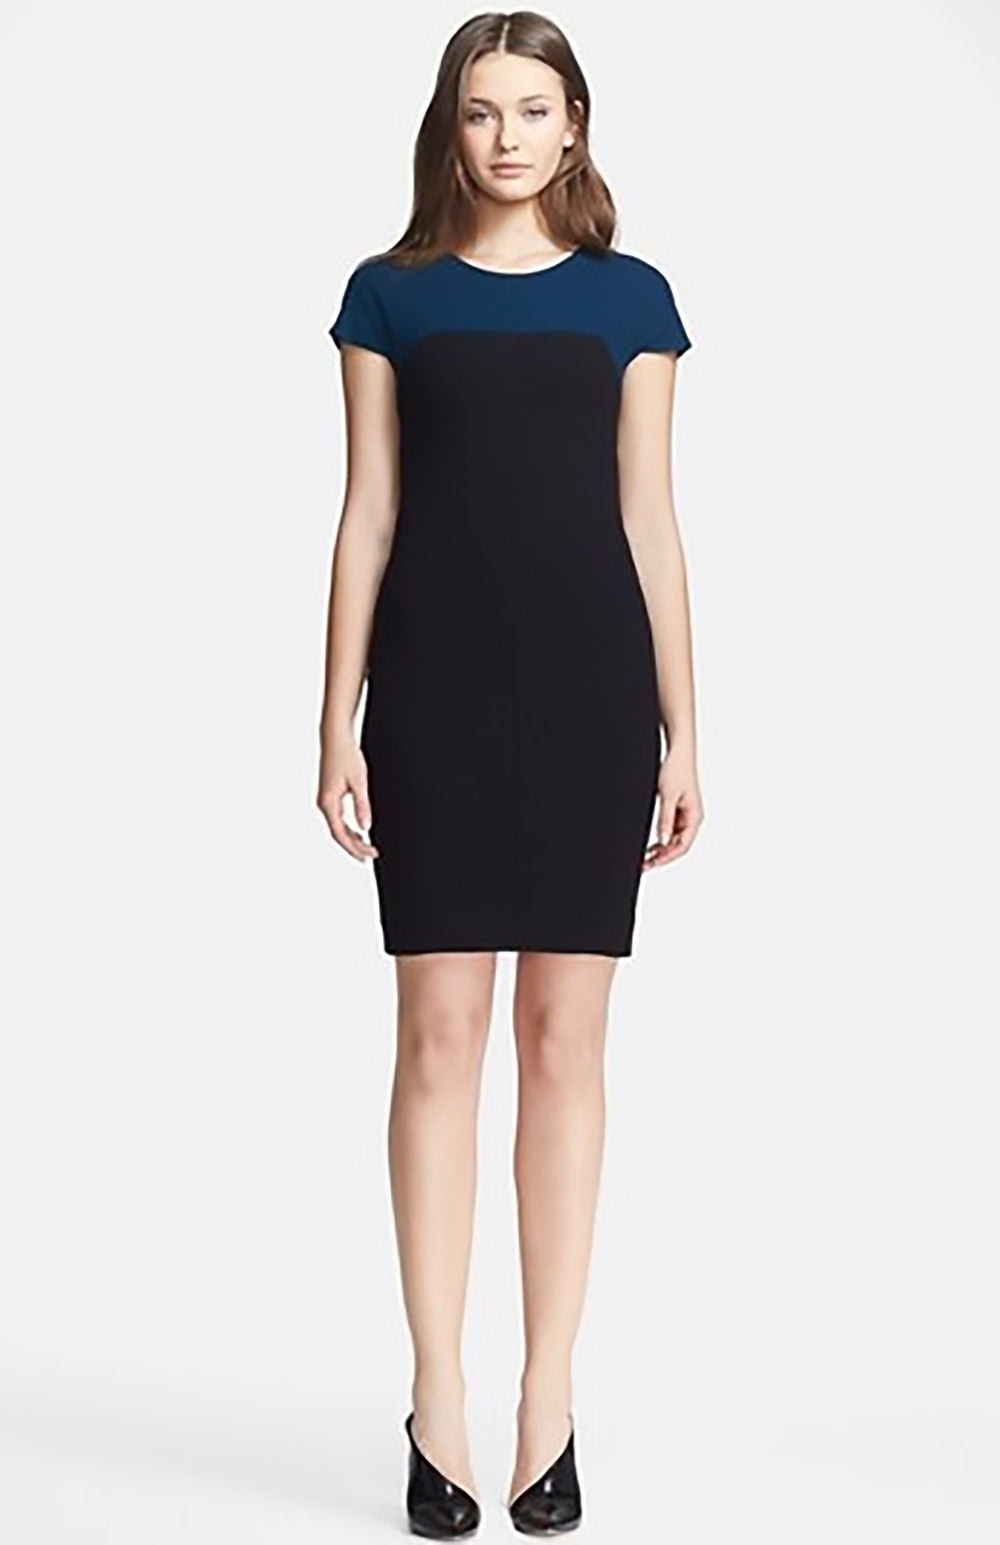 nordstrom narciso rodriguez two tone stretch silk crepe dress sheath dress 1500.jpg